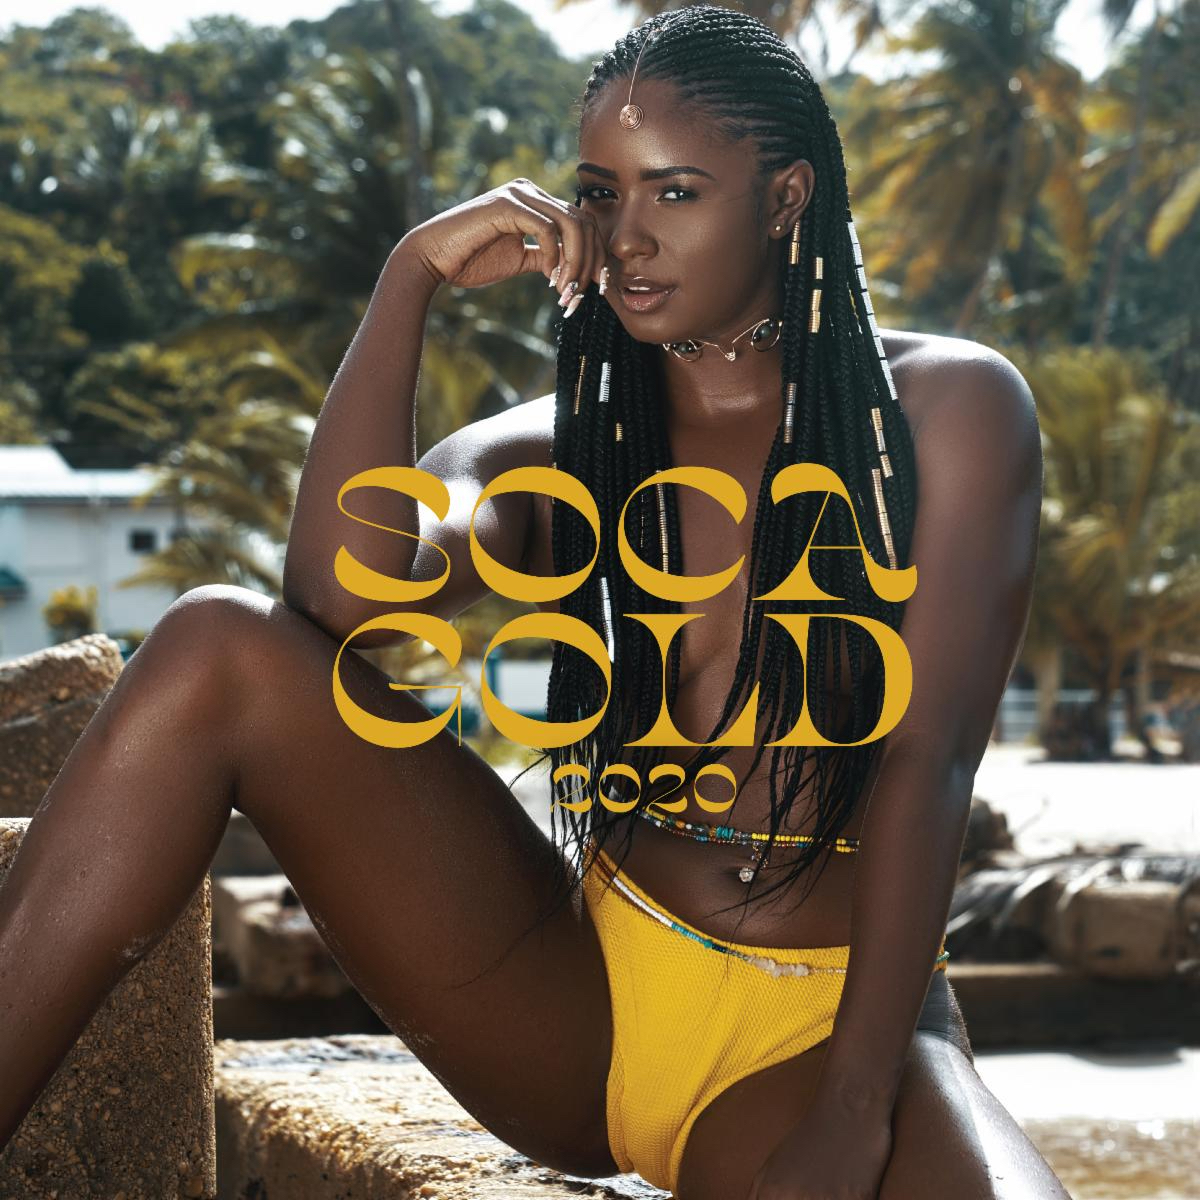 Soca Gold 2020 Brings Carnival Home With World's Greatest Soca Party